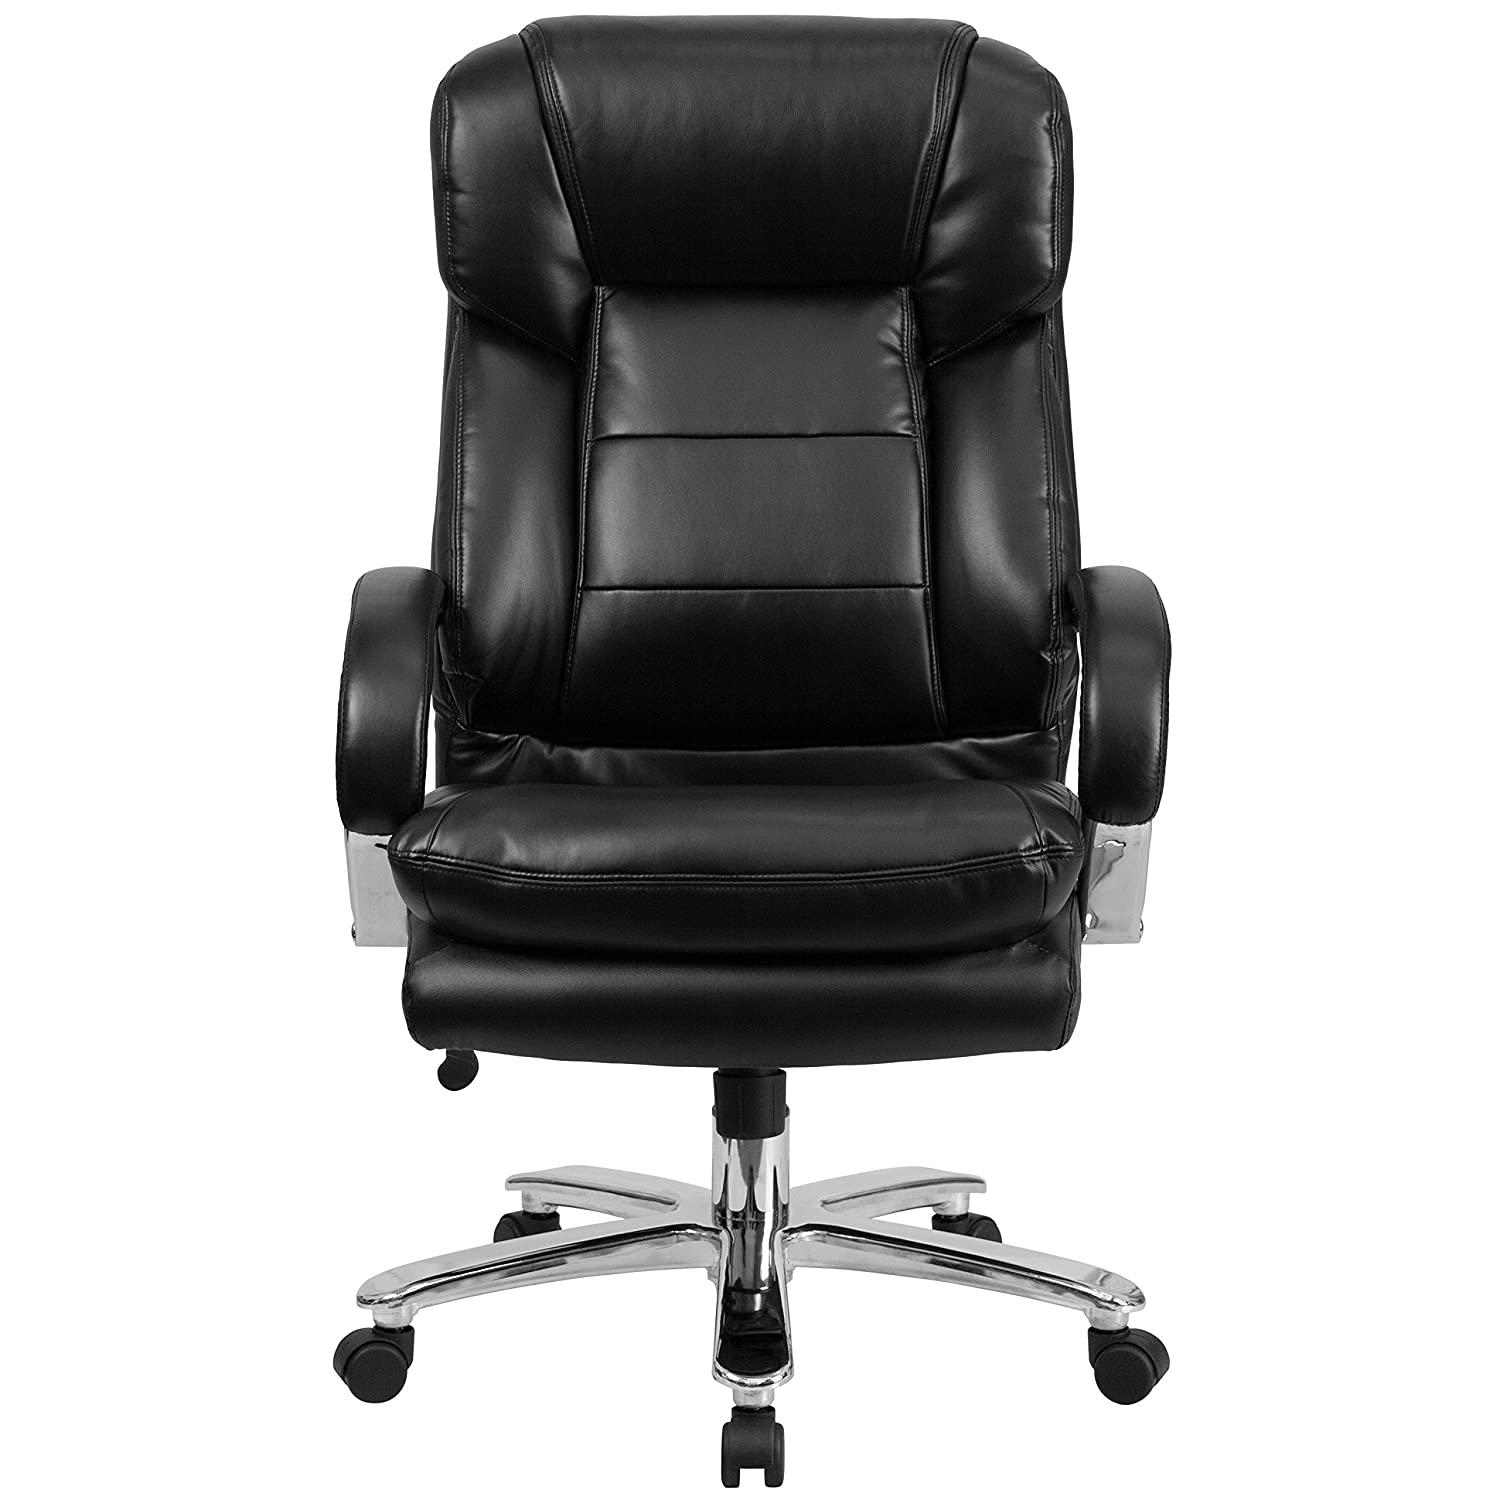 Tall Chair Best Big And Tall Office Chairs Big And Tall Office Chair